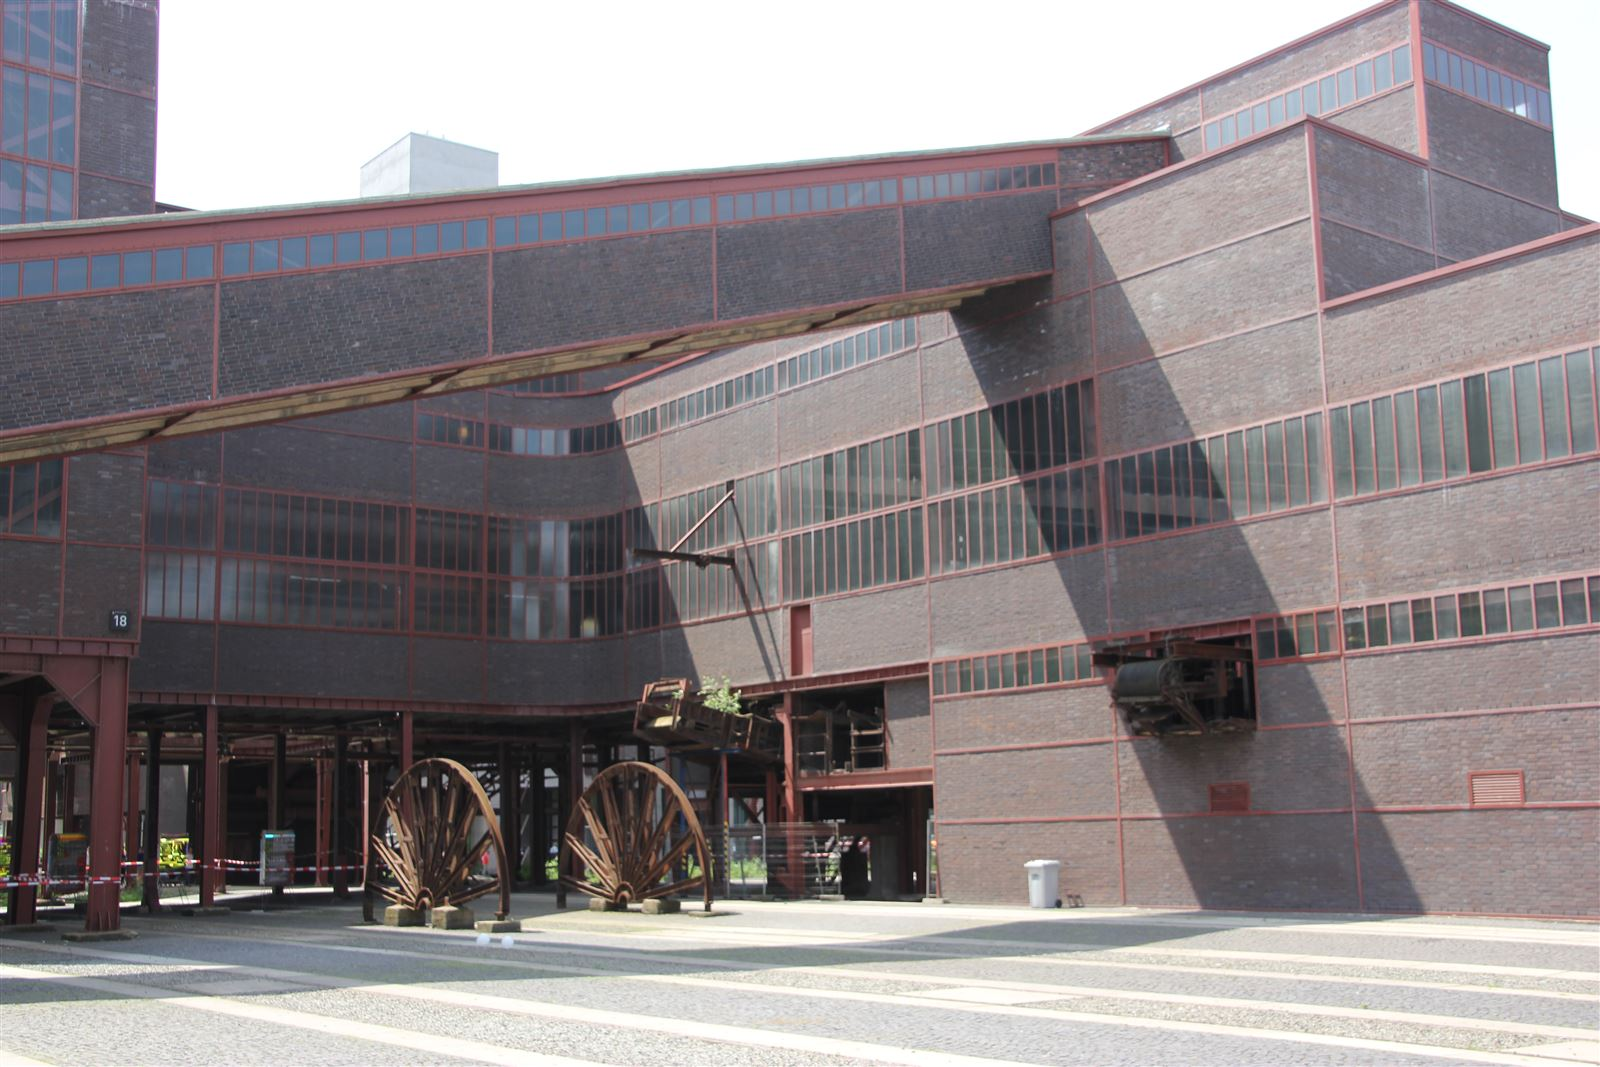 Zeche Zollverein Img_8113